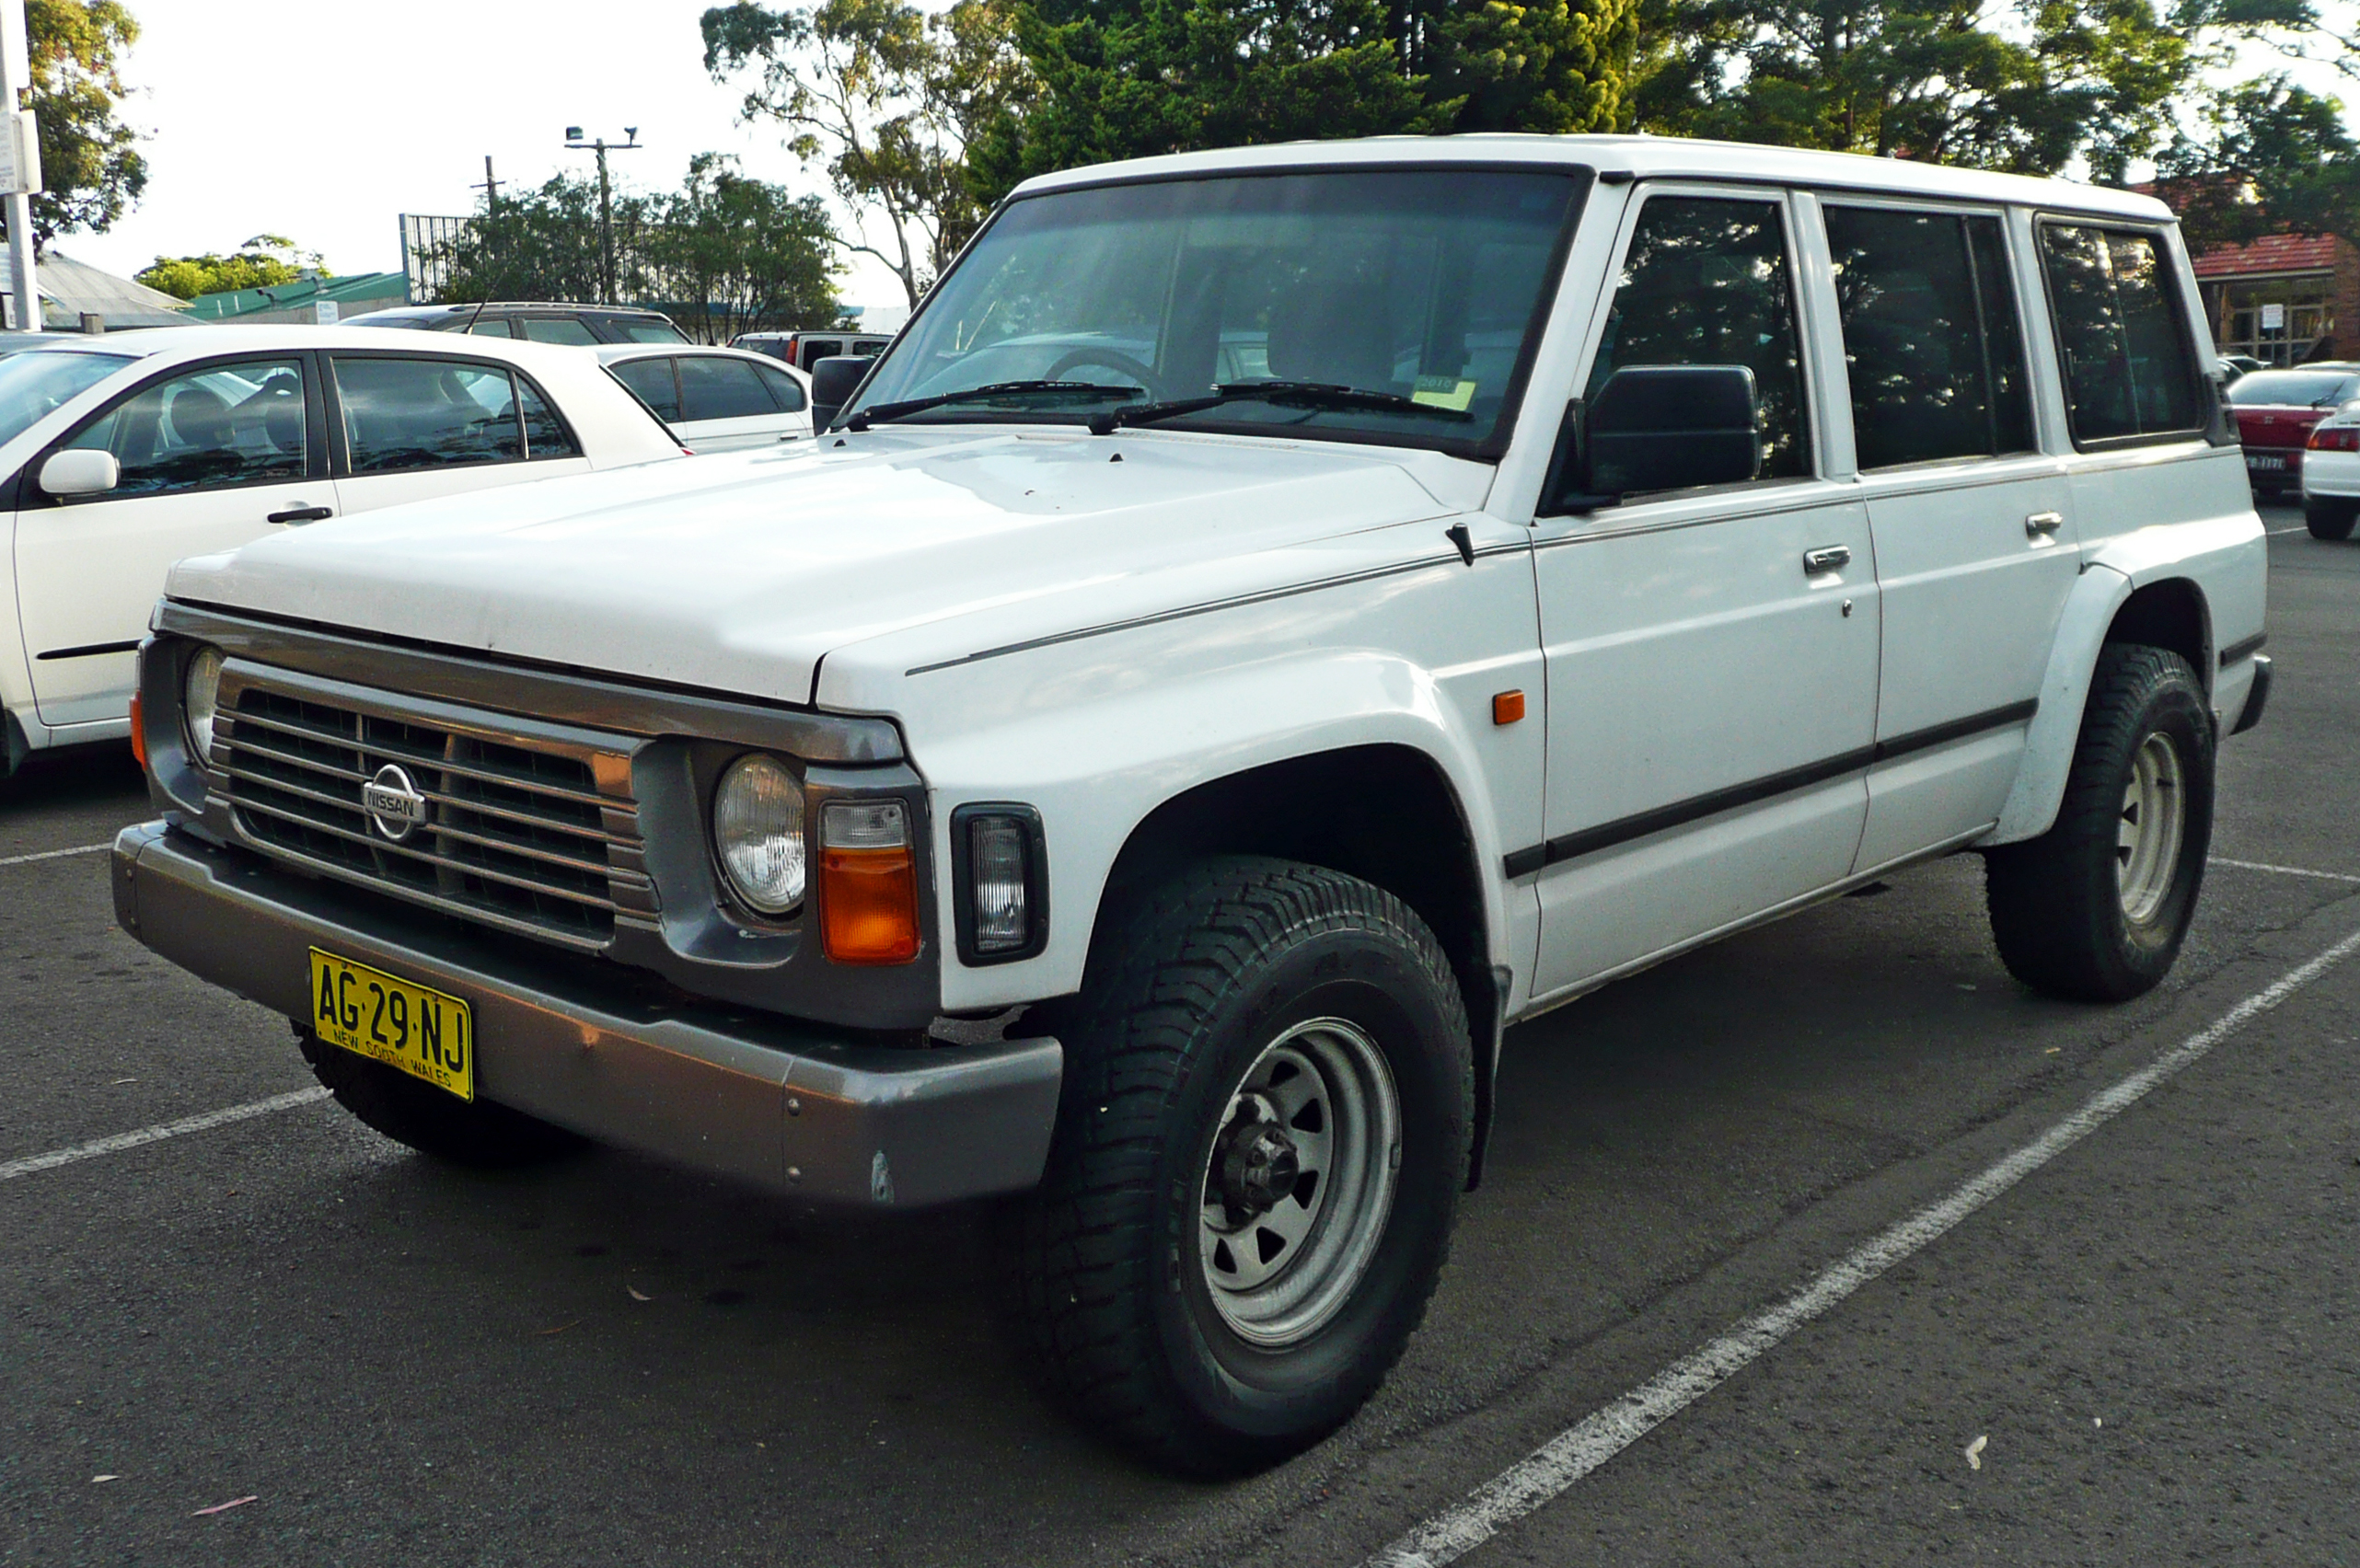 Nissan Safari IV (Y60) 1989 - 1997 SUV 5 door #2